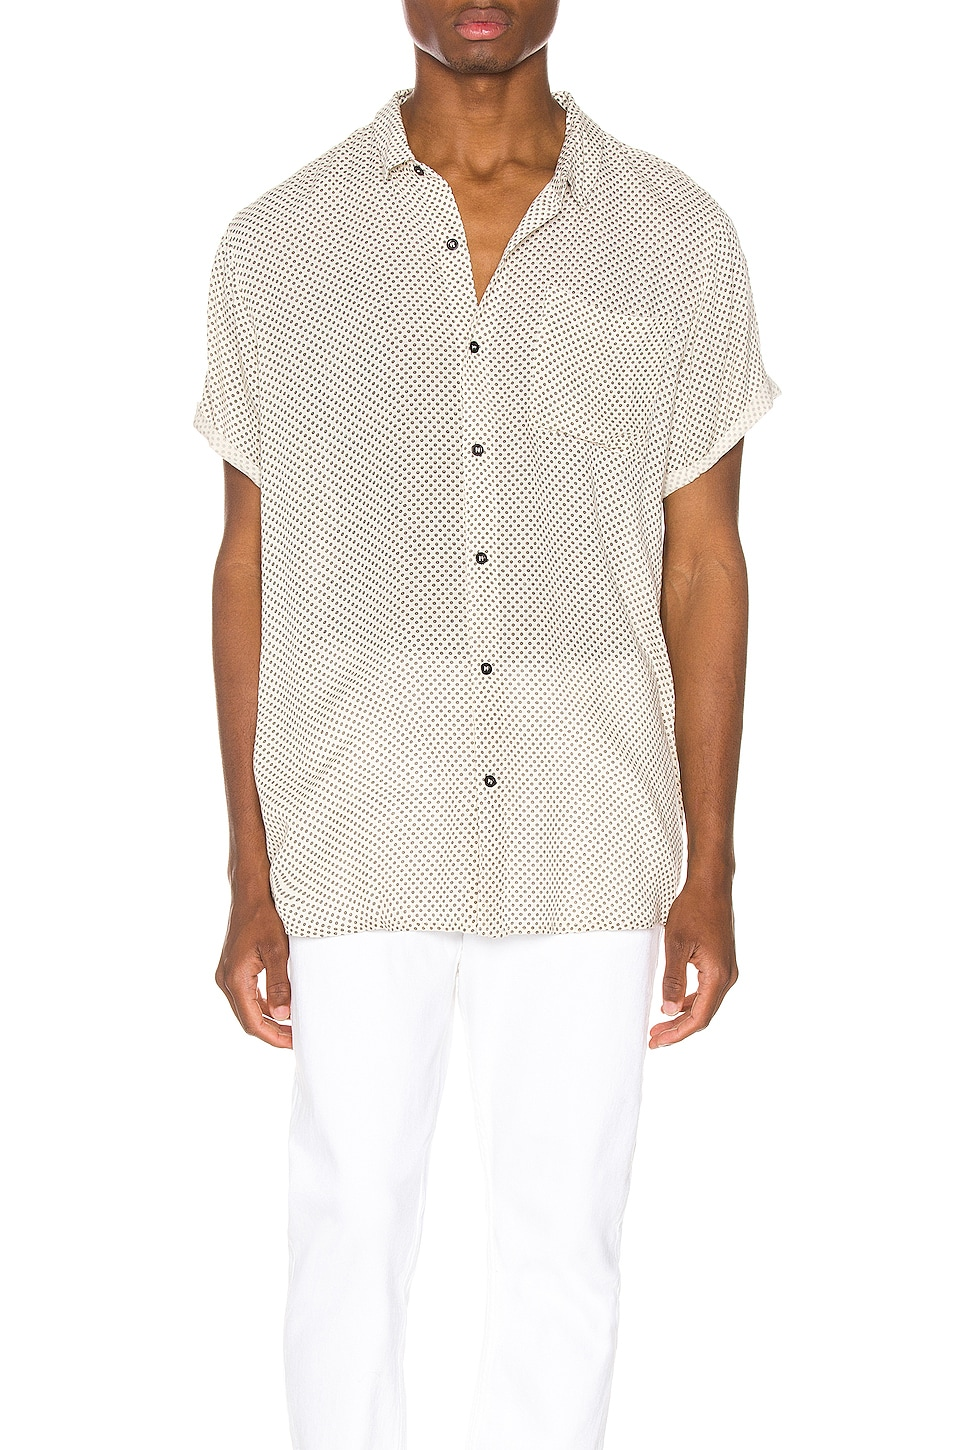 ROLLA'S Beach Boy Dot Shirt in Dreamtime White